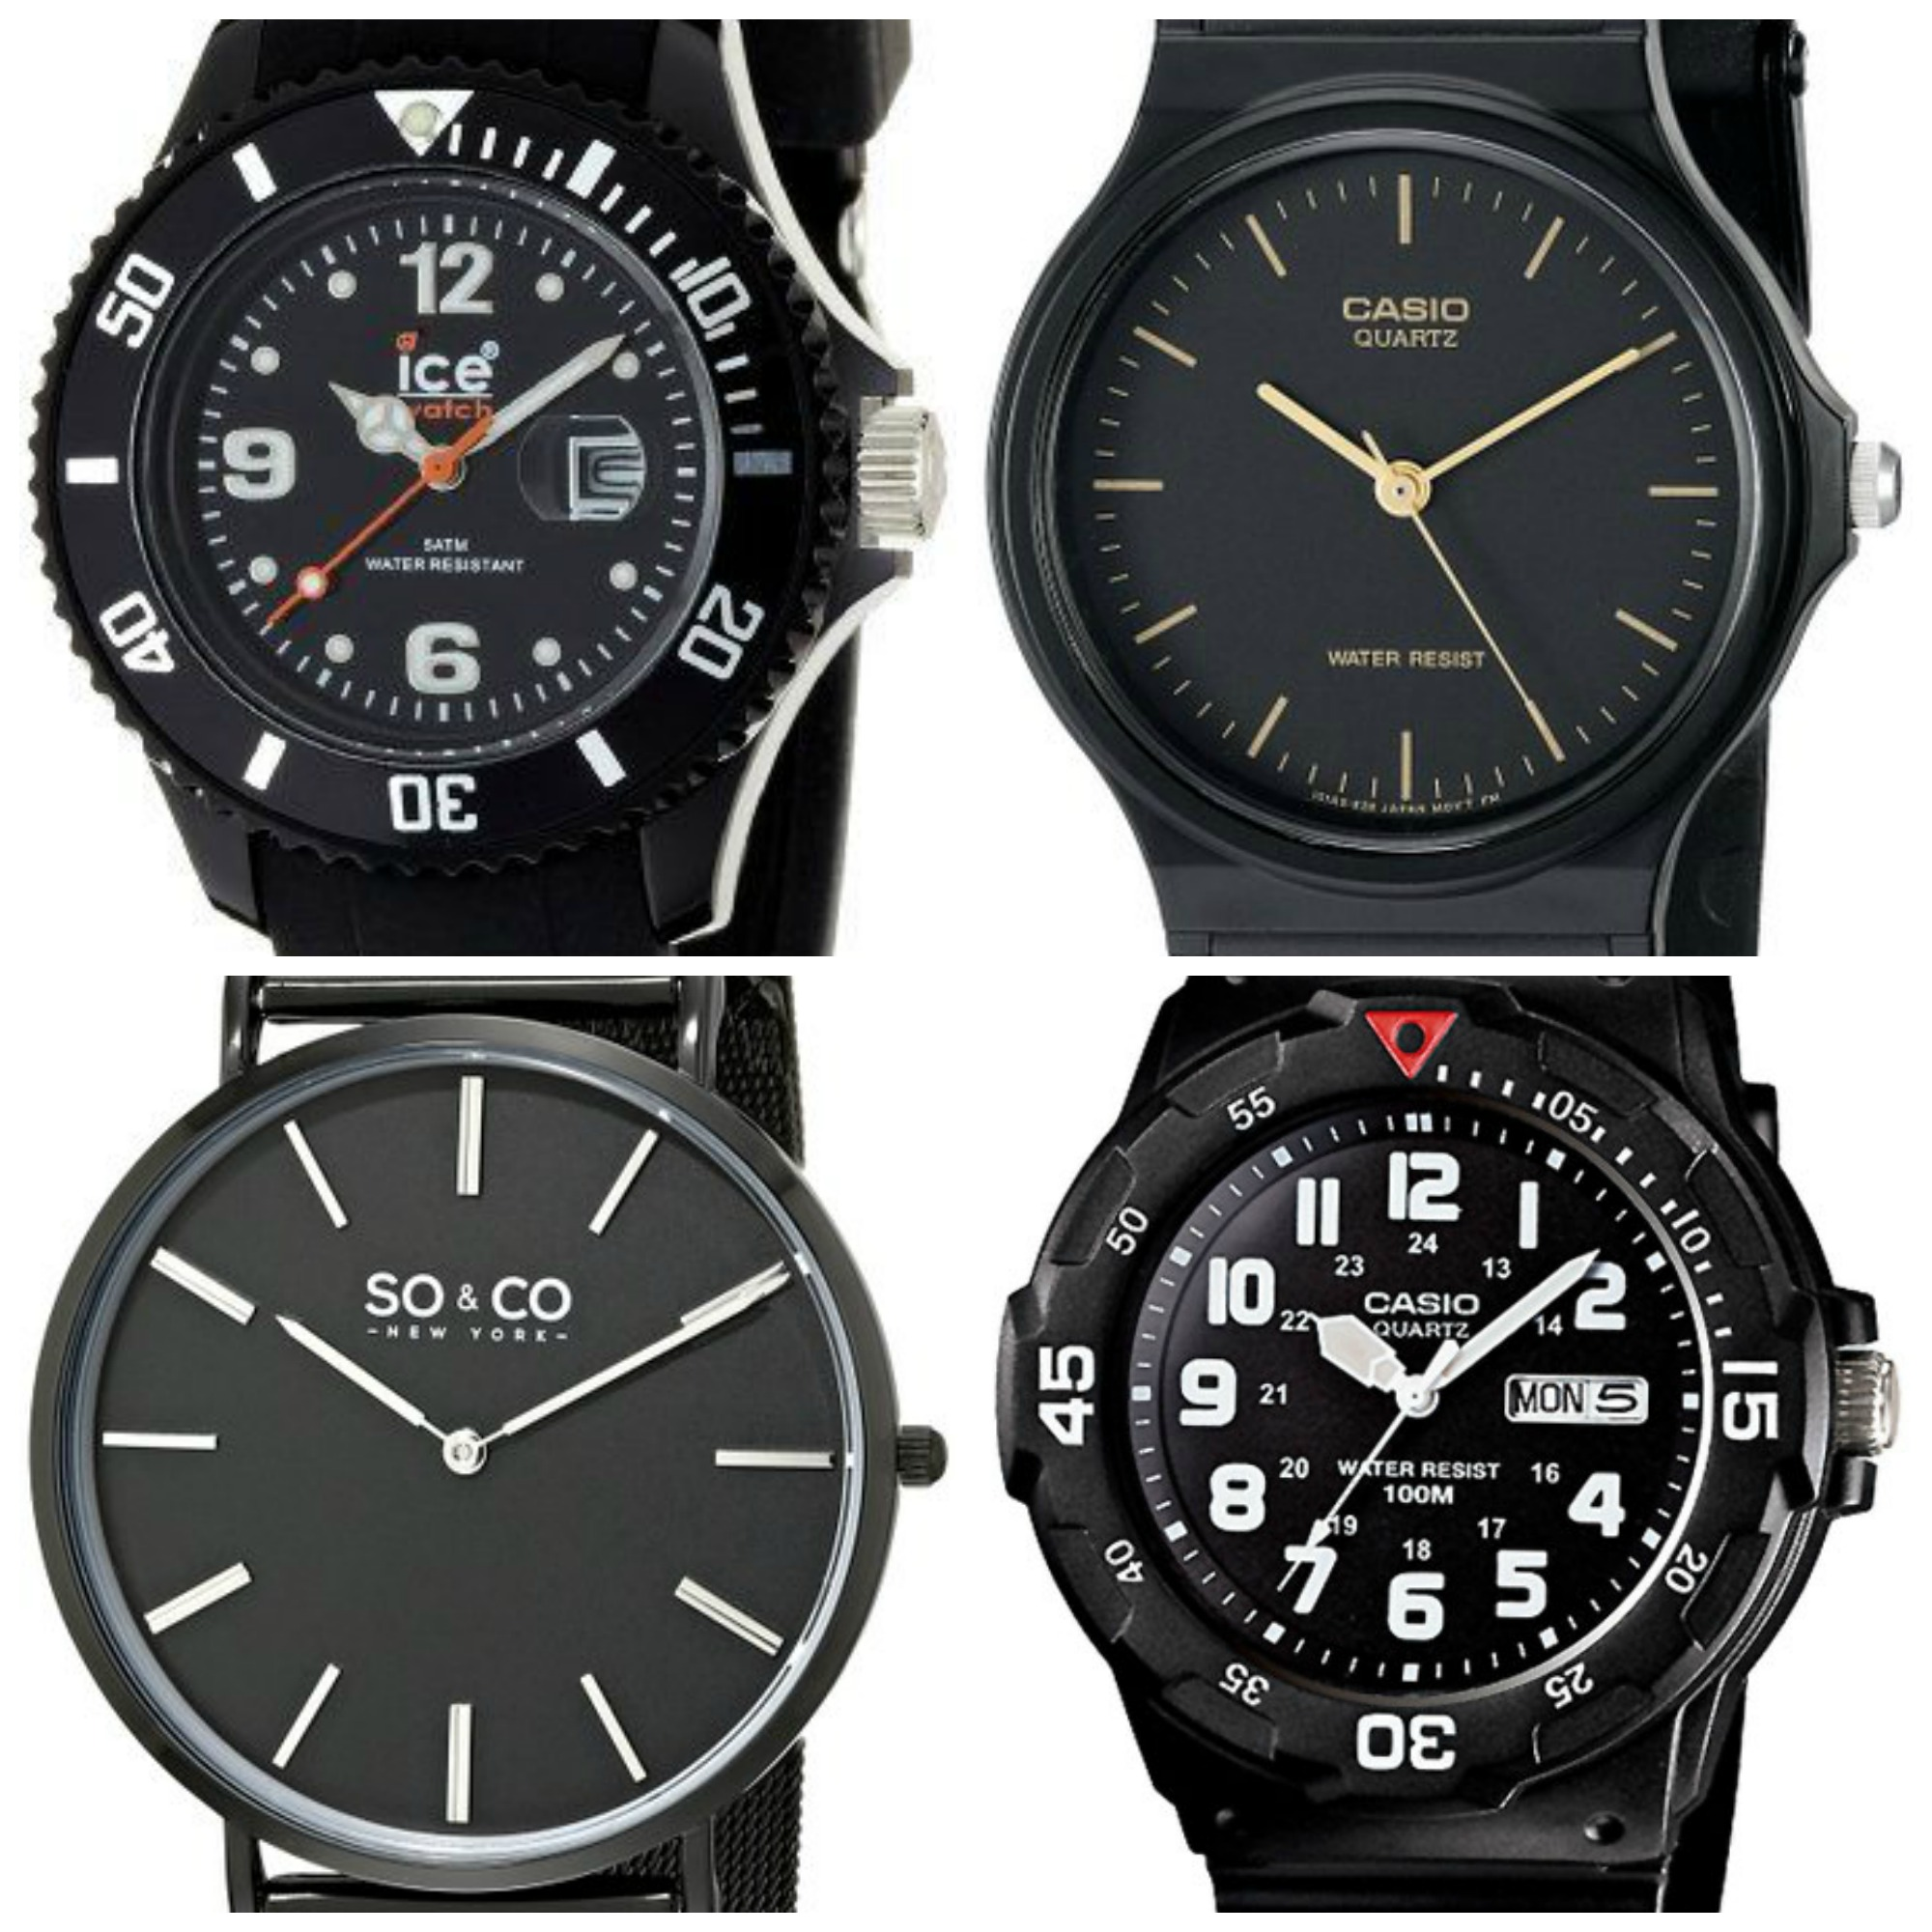 15 Best Cheap Black Watches Under 50 For Men The Watch Blog